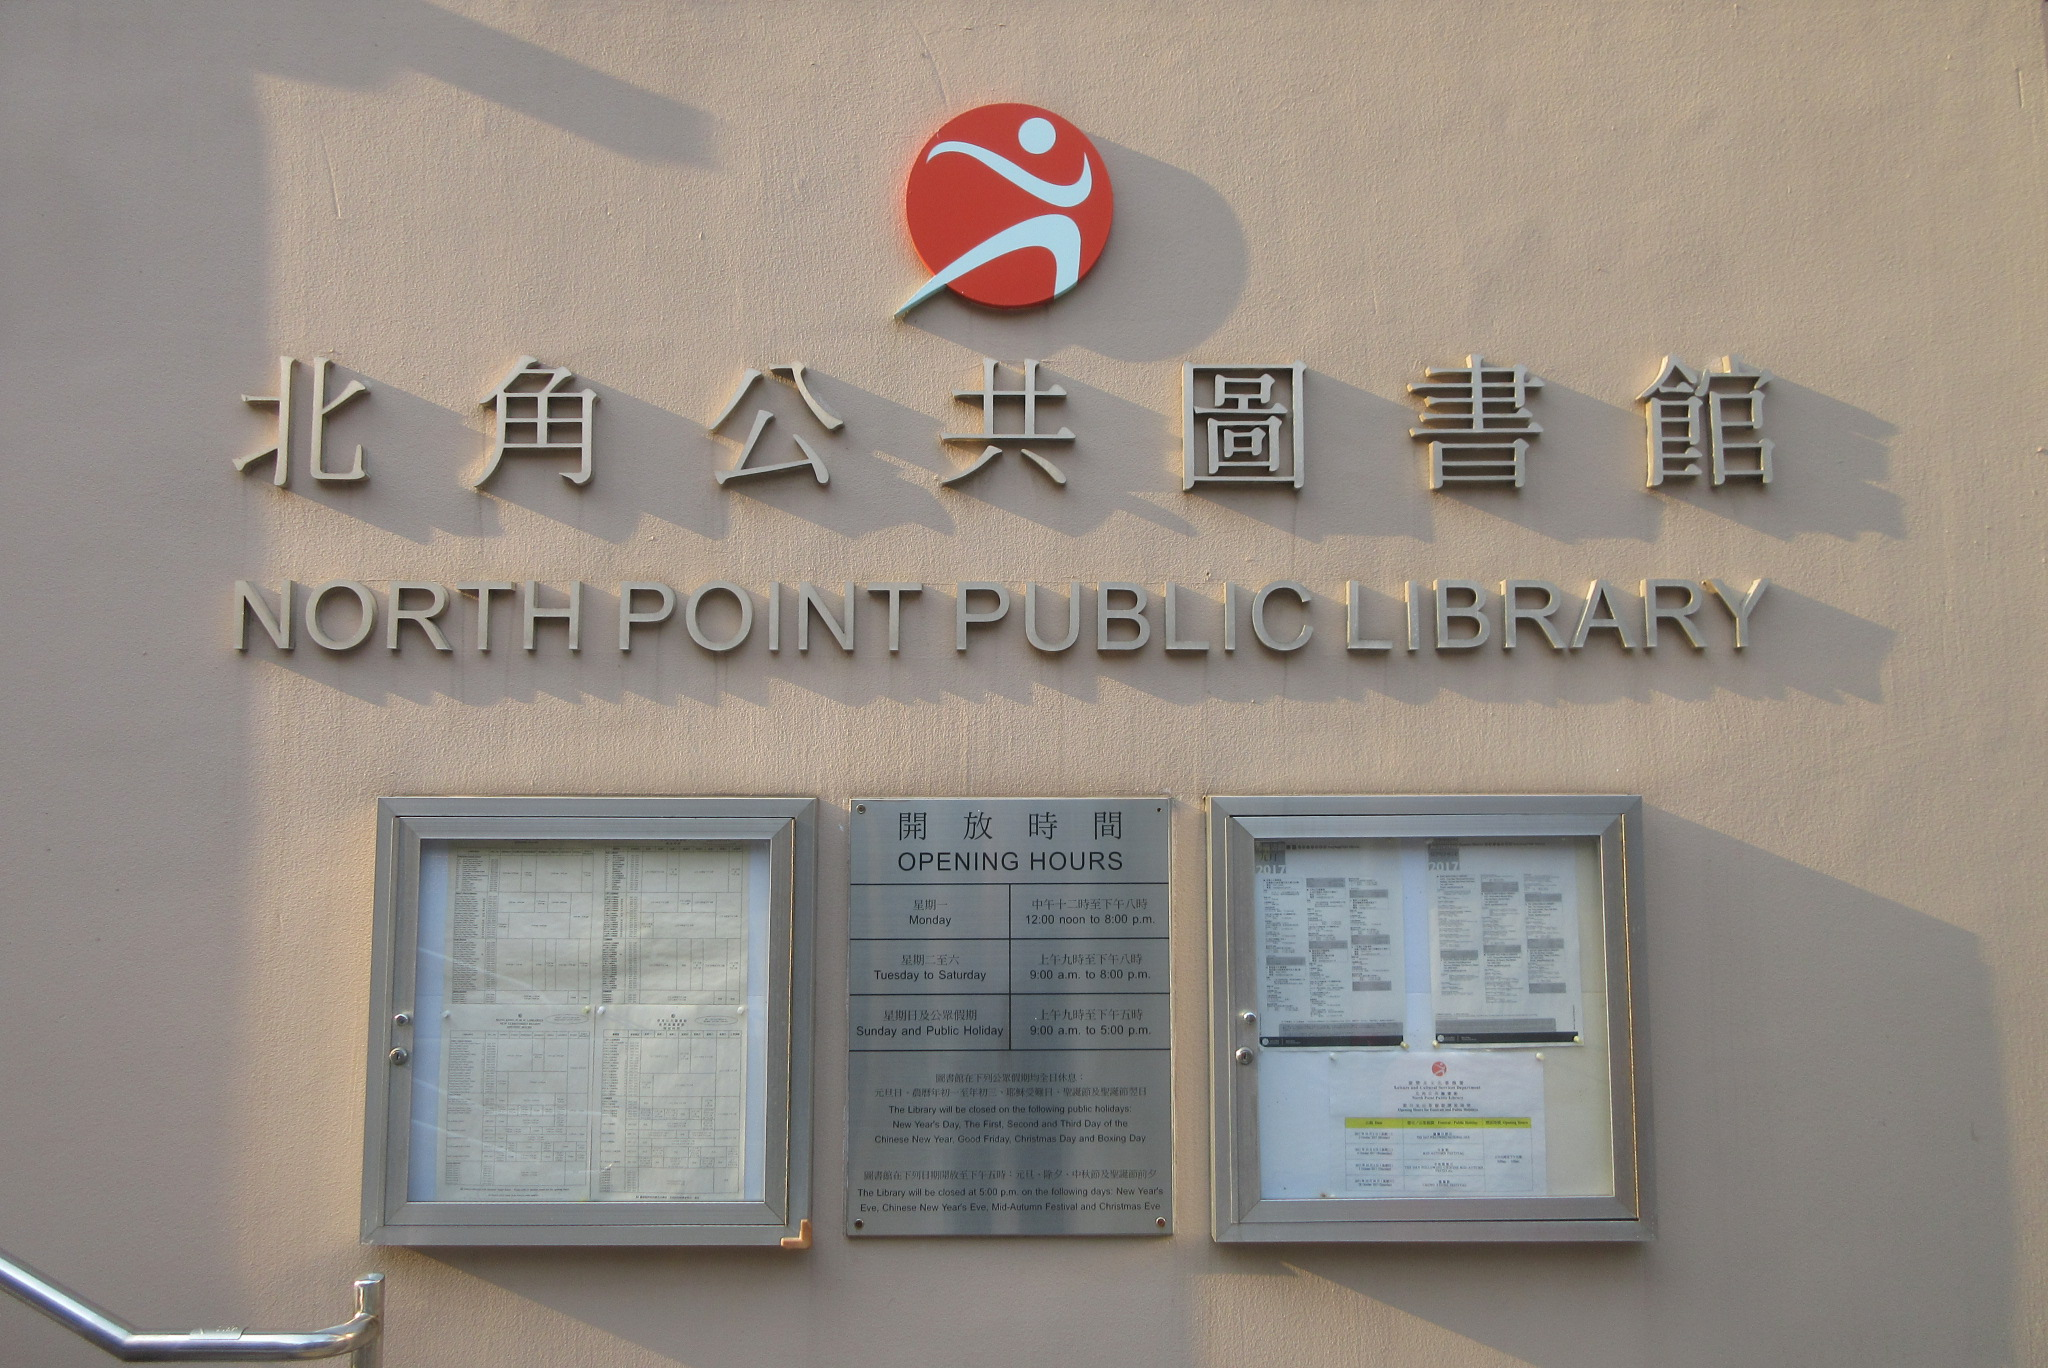 File:HK North Point 北角公共圖書館 Public Library name sign